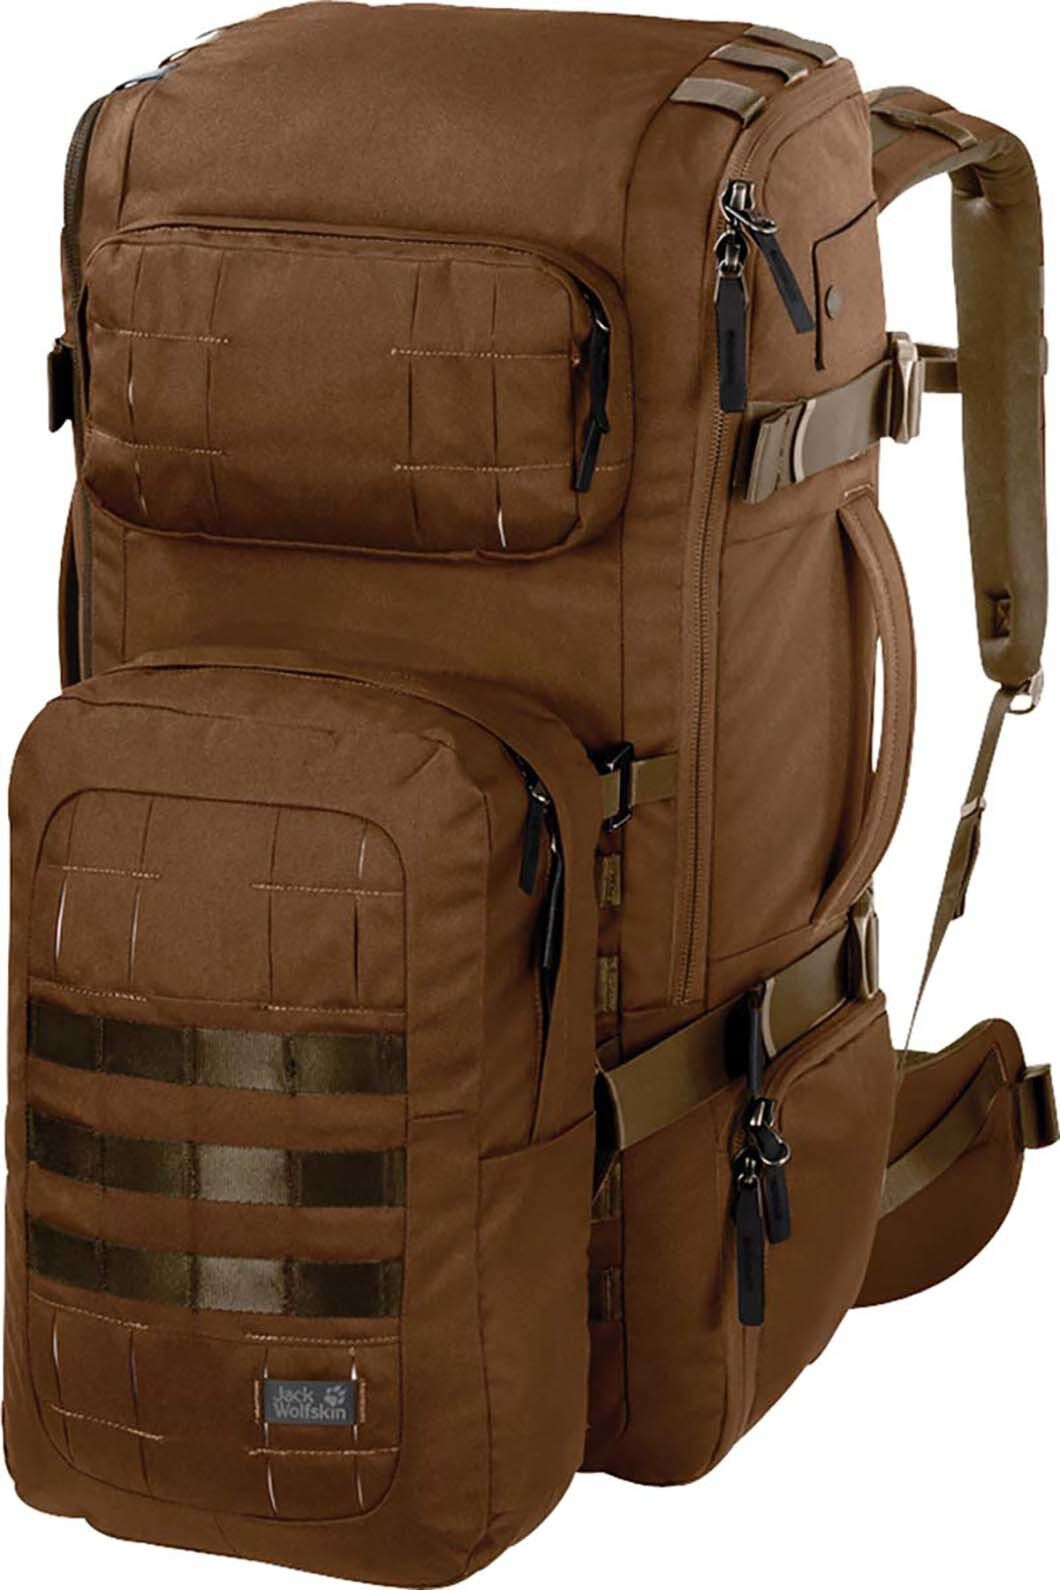 Jack Wolfskin TRT Travel Pack 55 + 10L, None, hi-res